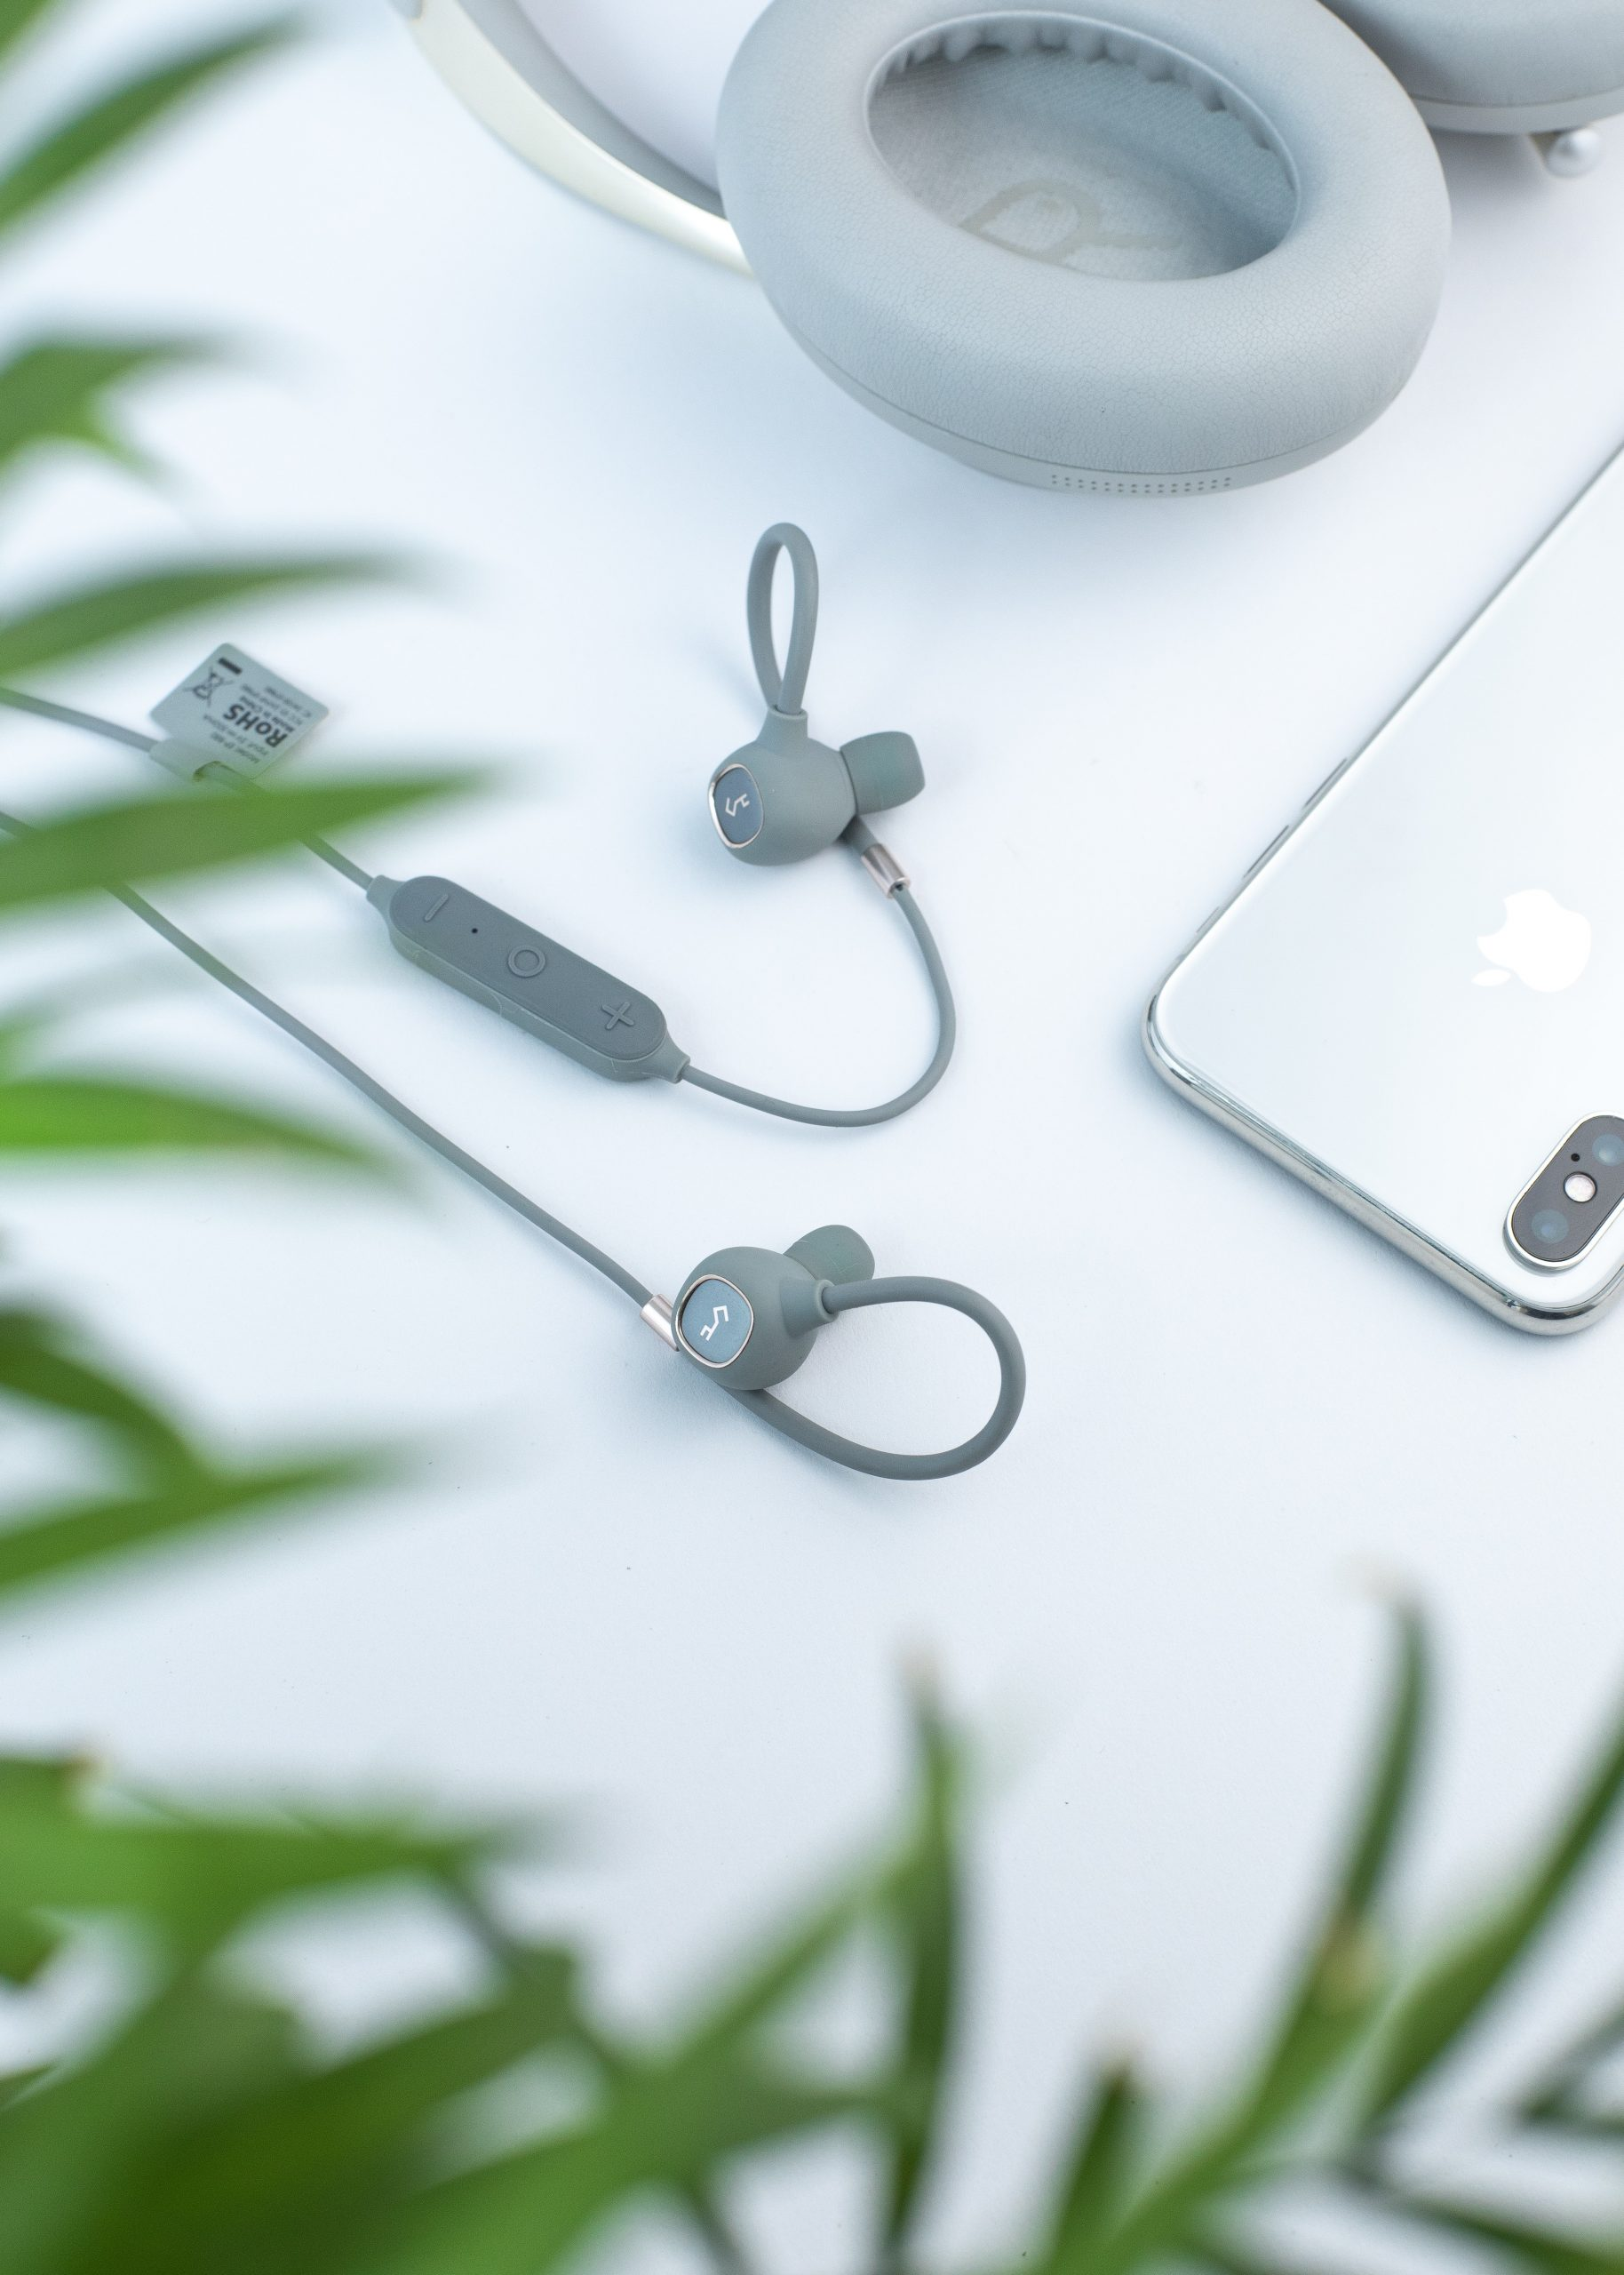 some mobile phone accessories